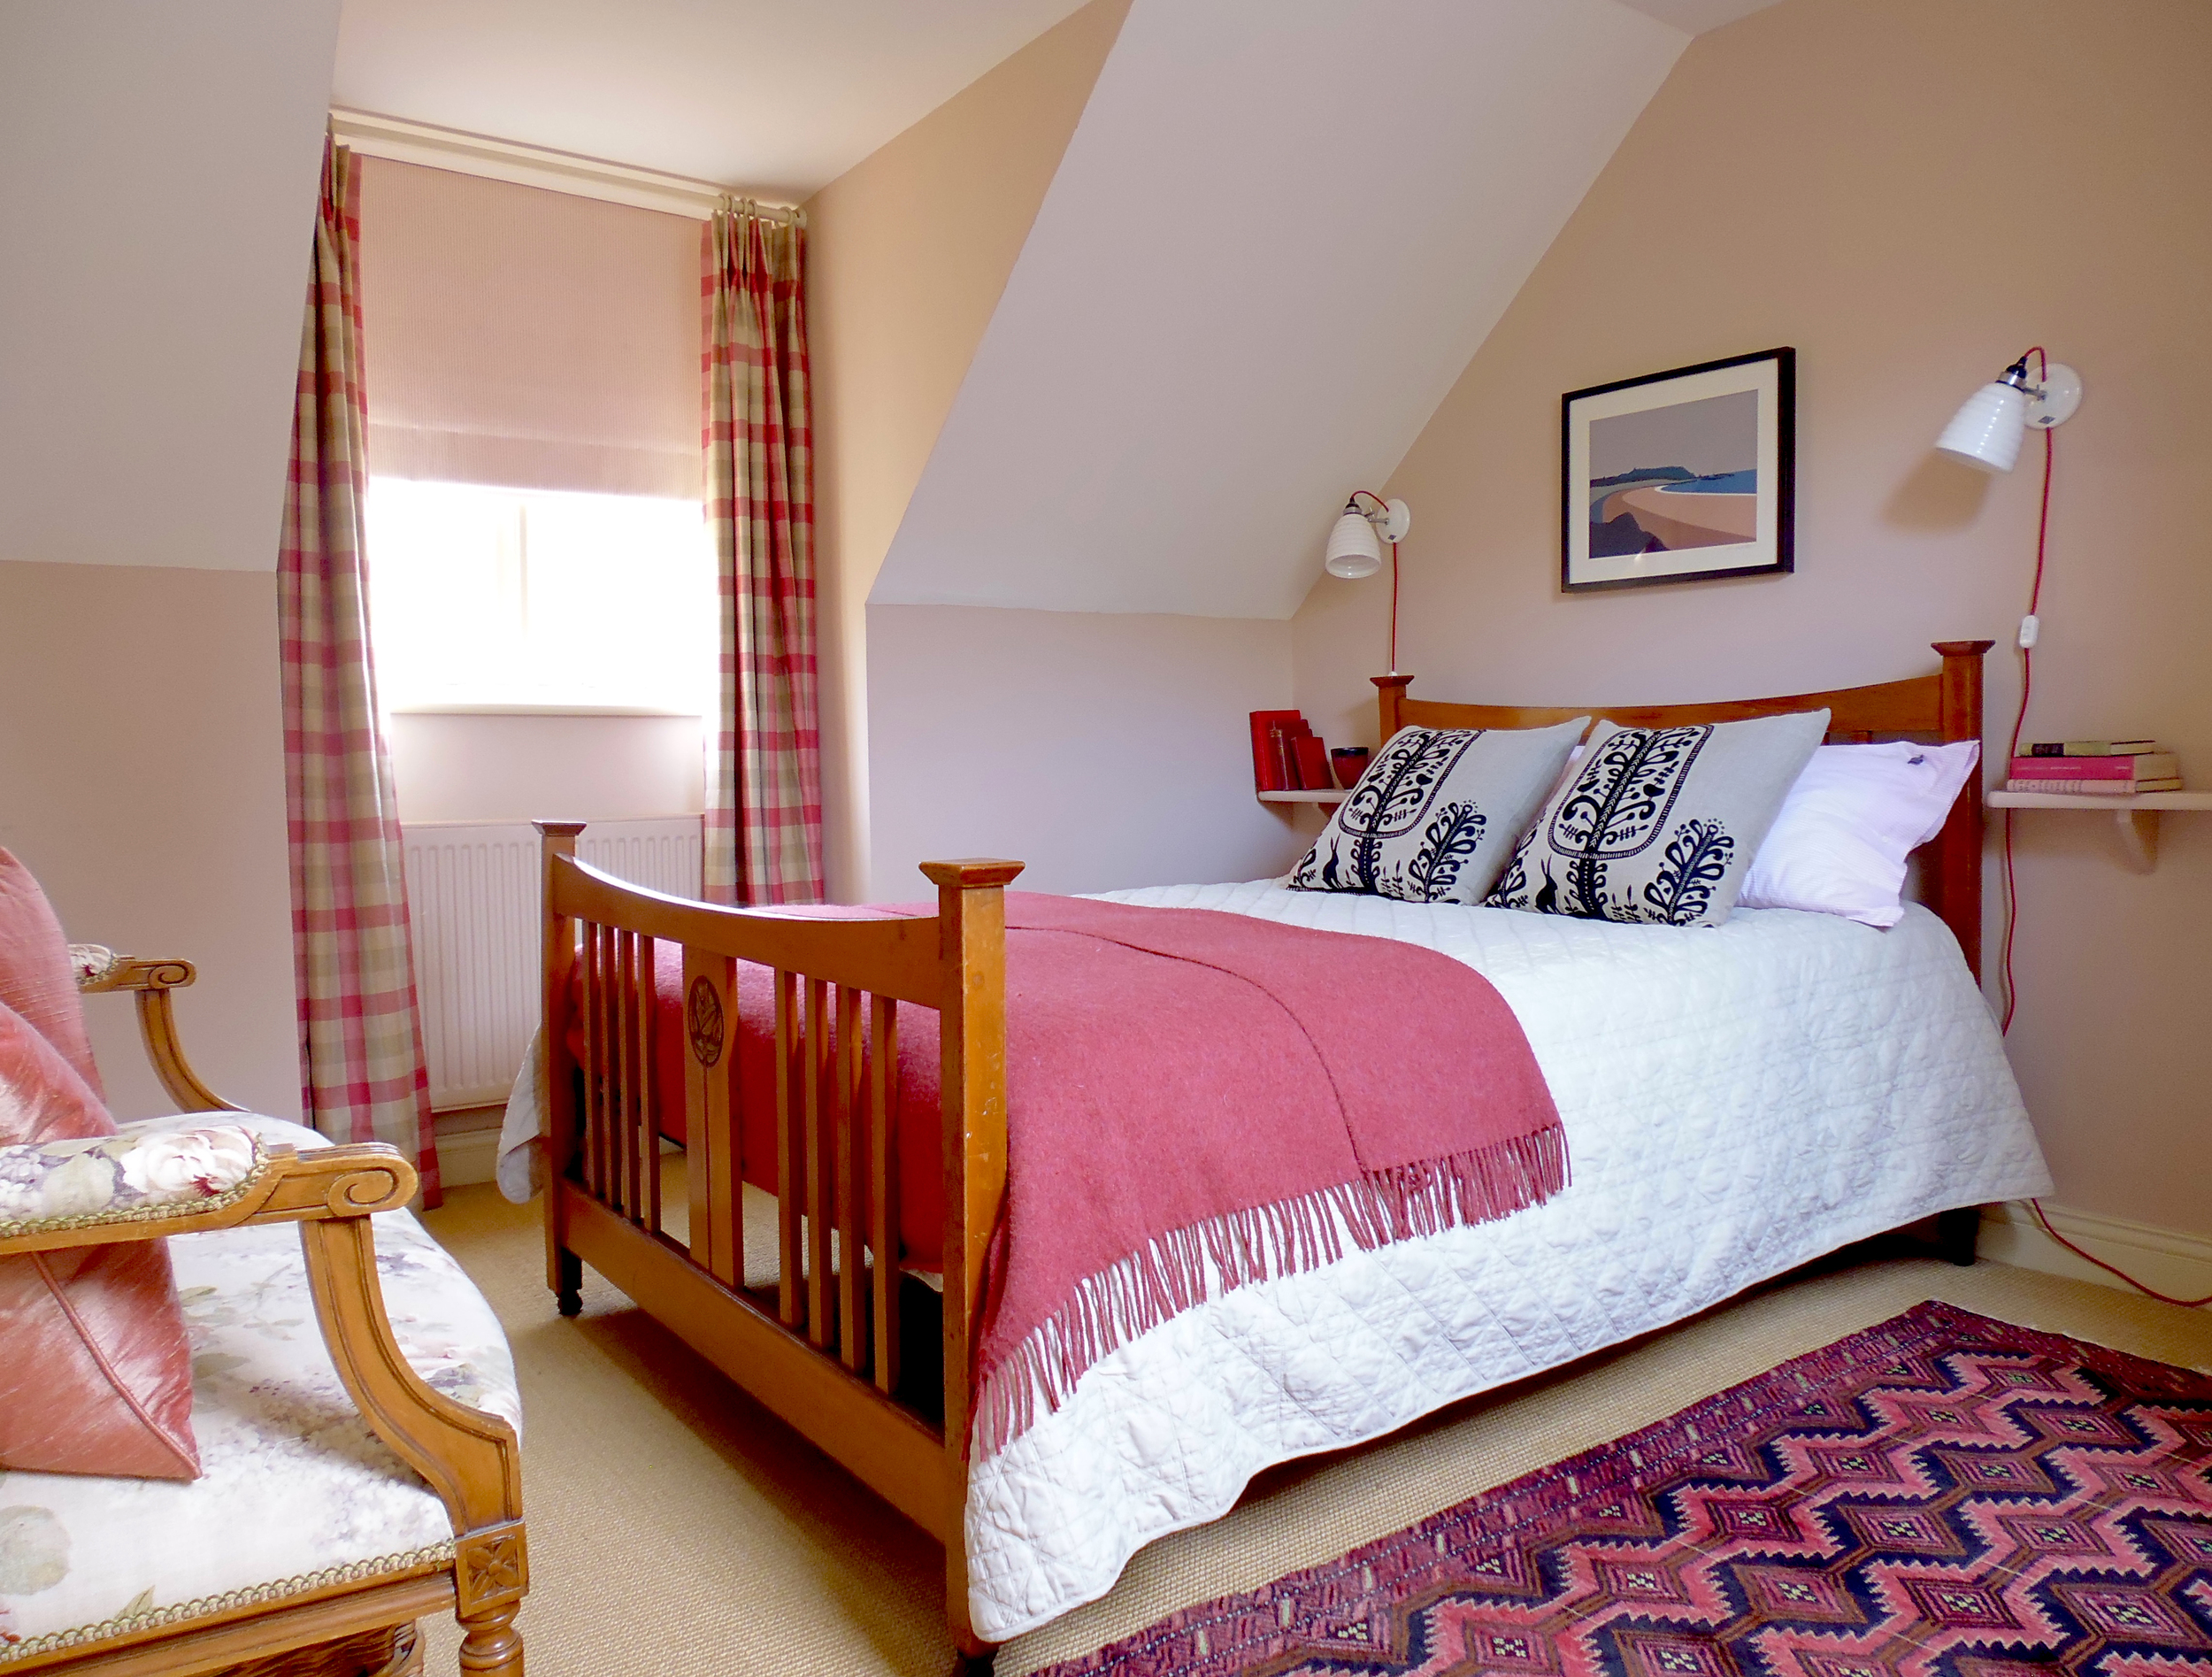 country style bedroom in farrow and ball setting plaster.jpg